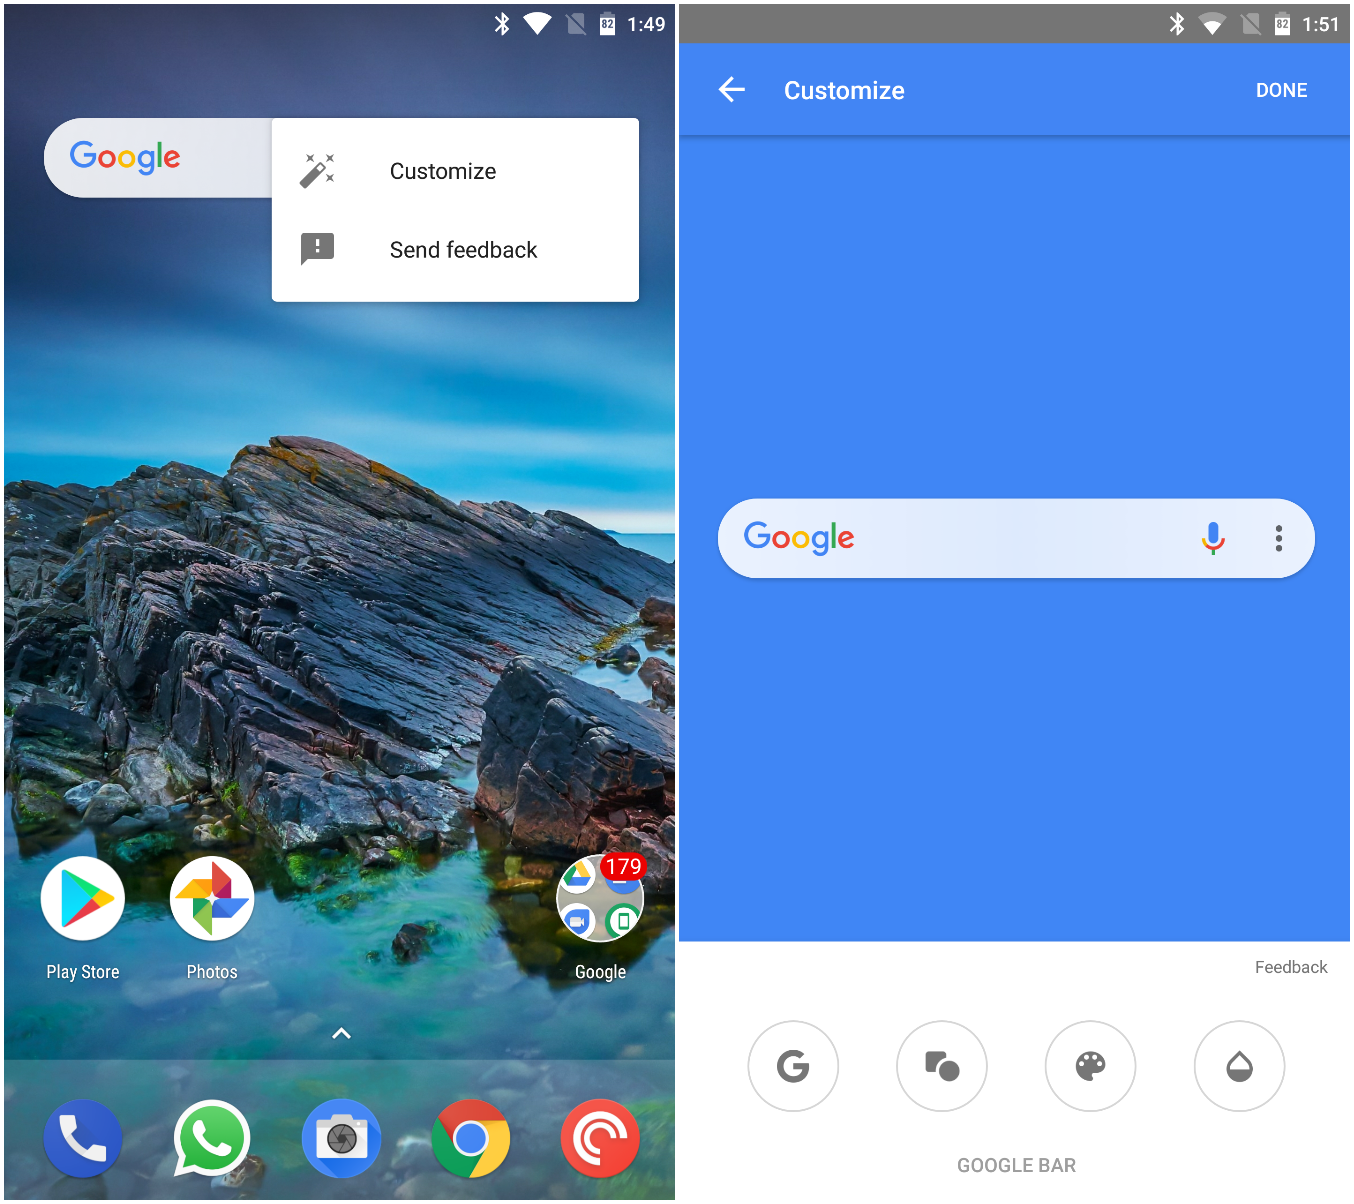 APK] Google App Beta 7 14 15 Adds Customizable Google Search